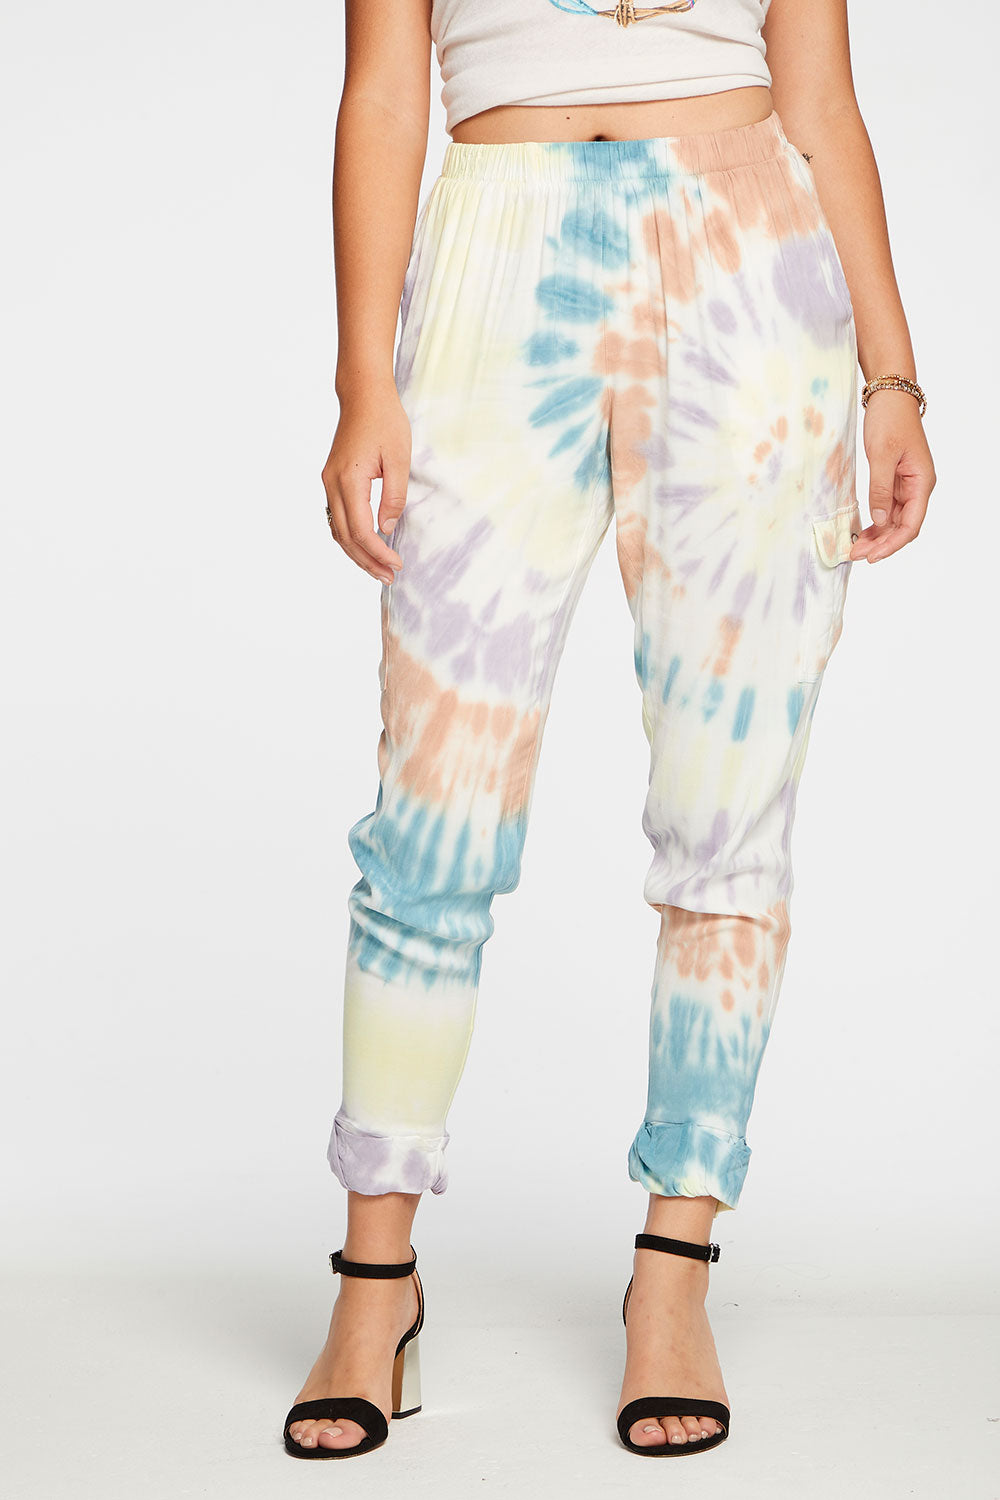 Heirloom Wovens Slouchy Rolled Cargo Pants in Tie Dye WOMENS chaserbrand4.myshopify.com